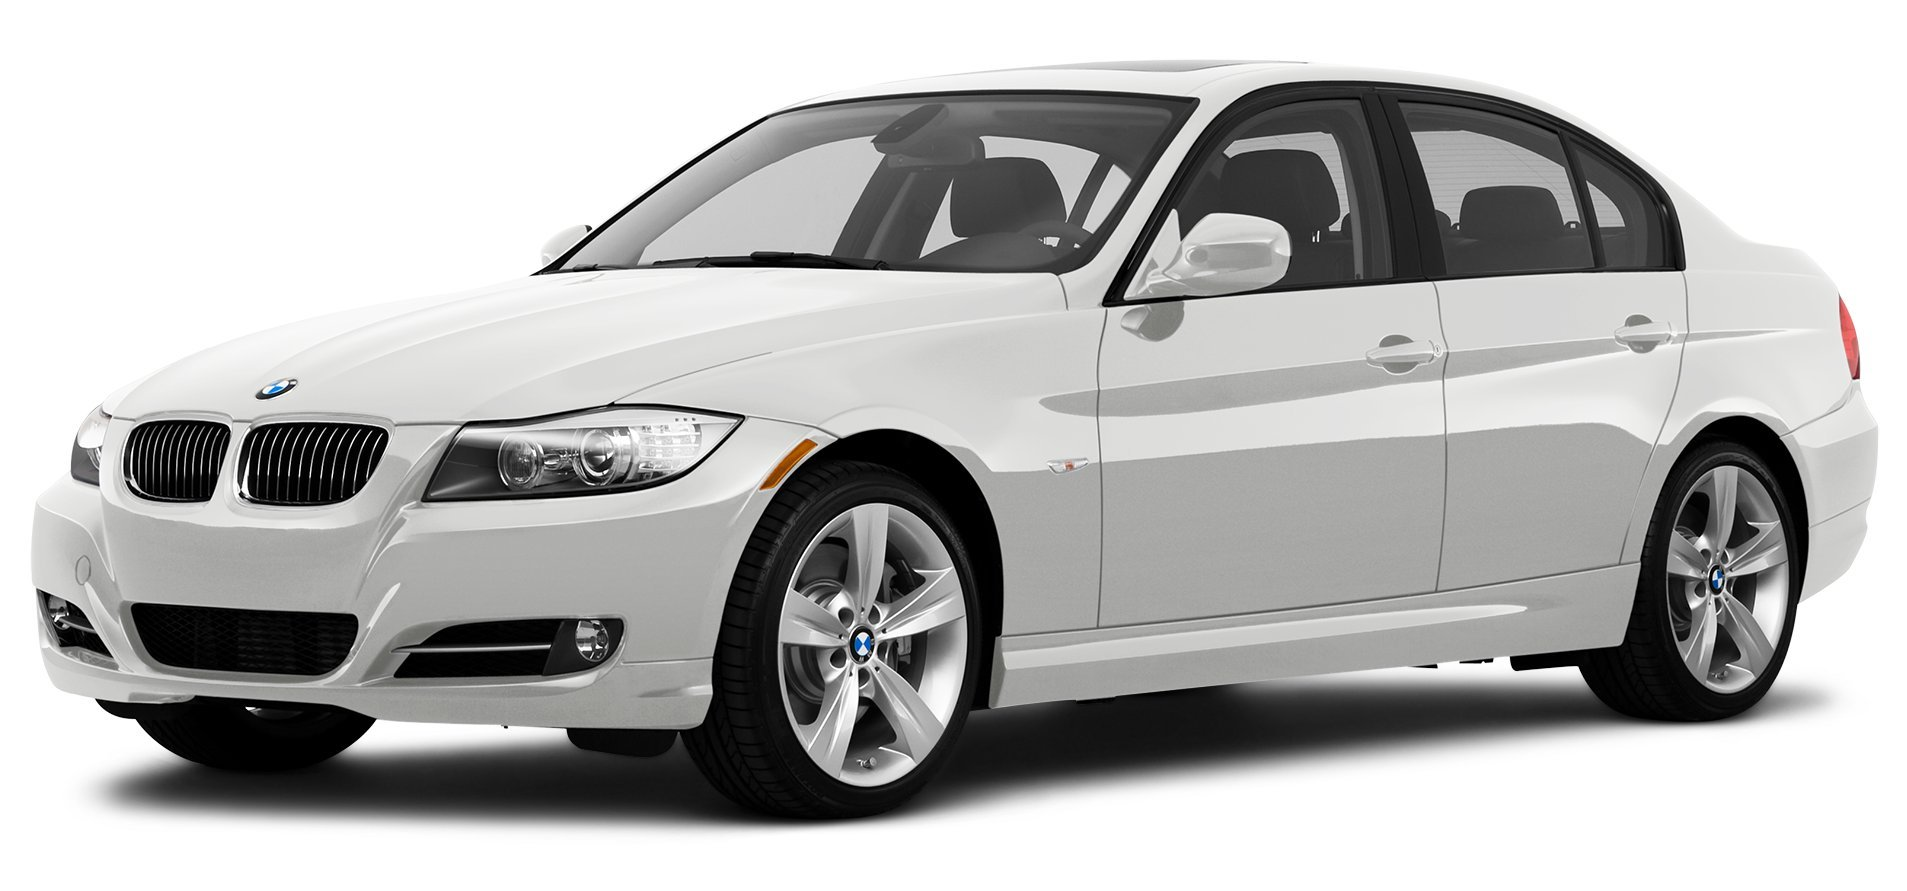 2010 Bmw 528i Reviews Images And Specs Vehicles 1987 Lincoln Town Car Electrical Vacuum Troubleshooting Manual 335i 4 Door Sedan Rear Wheel Drive